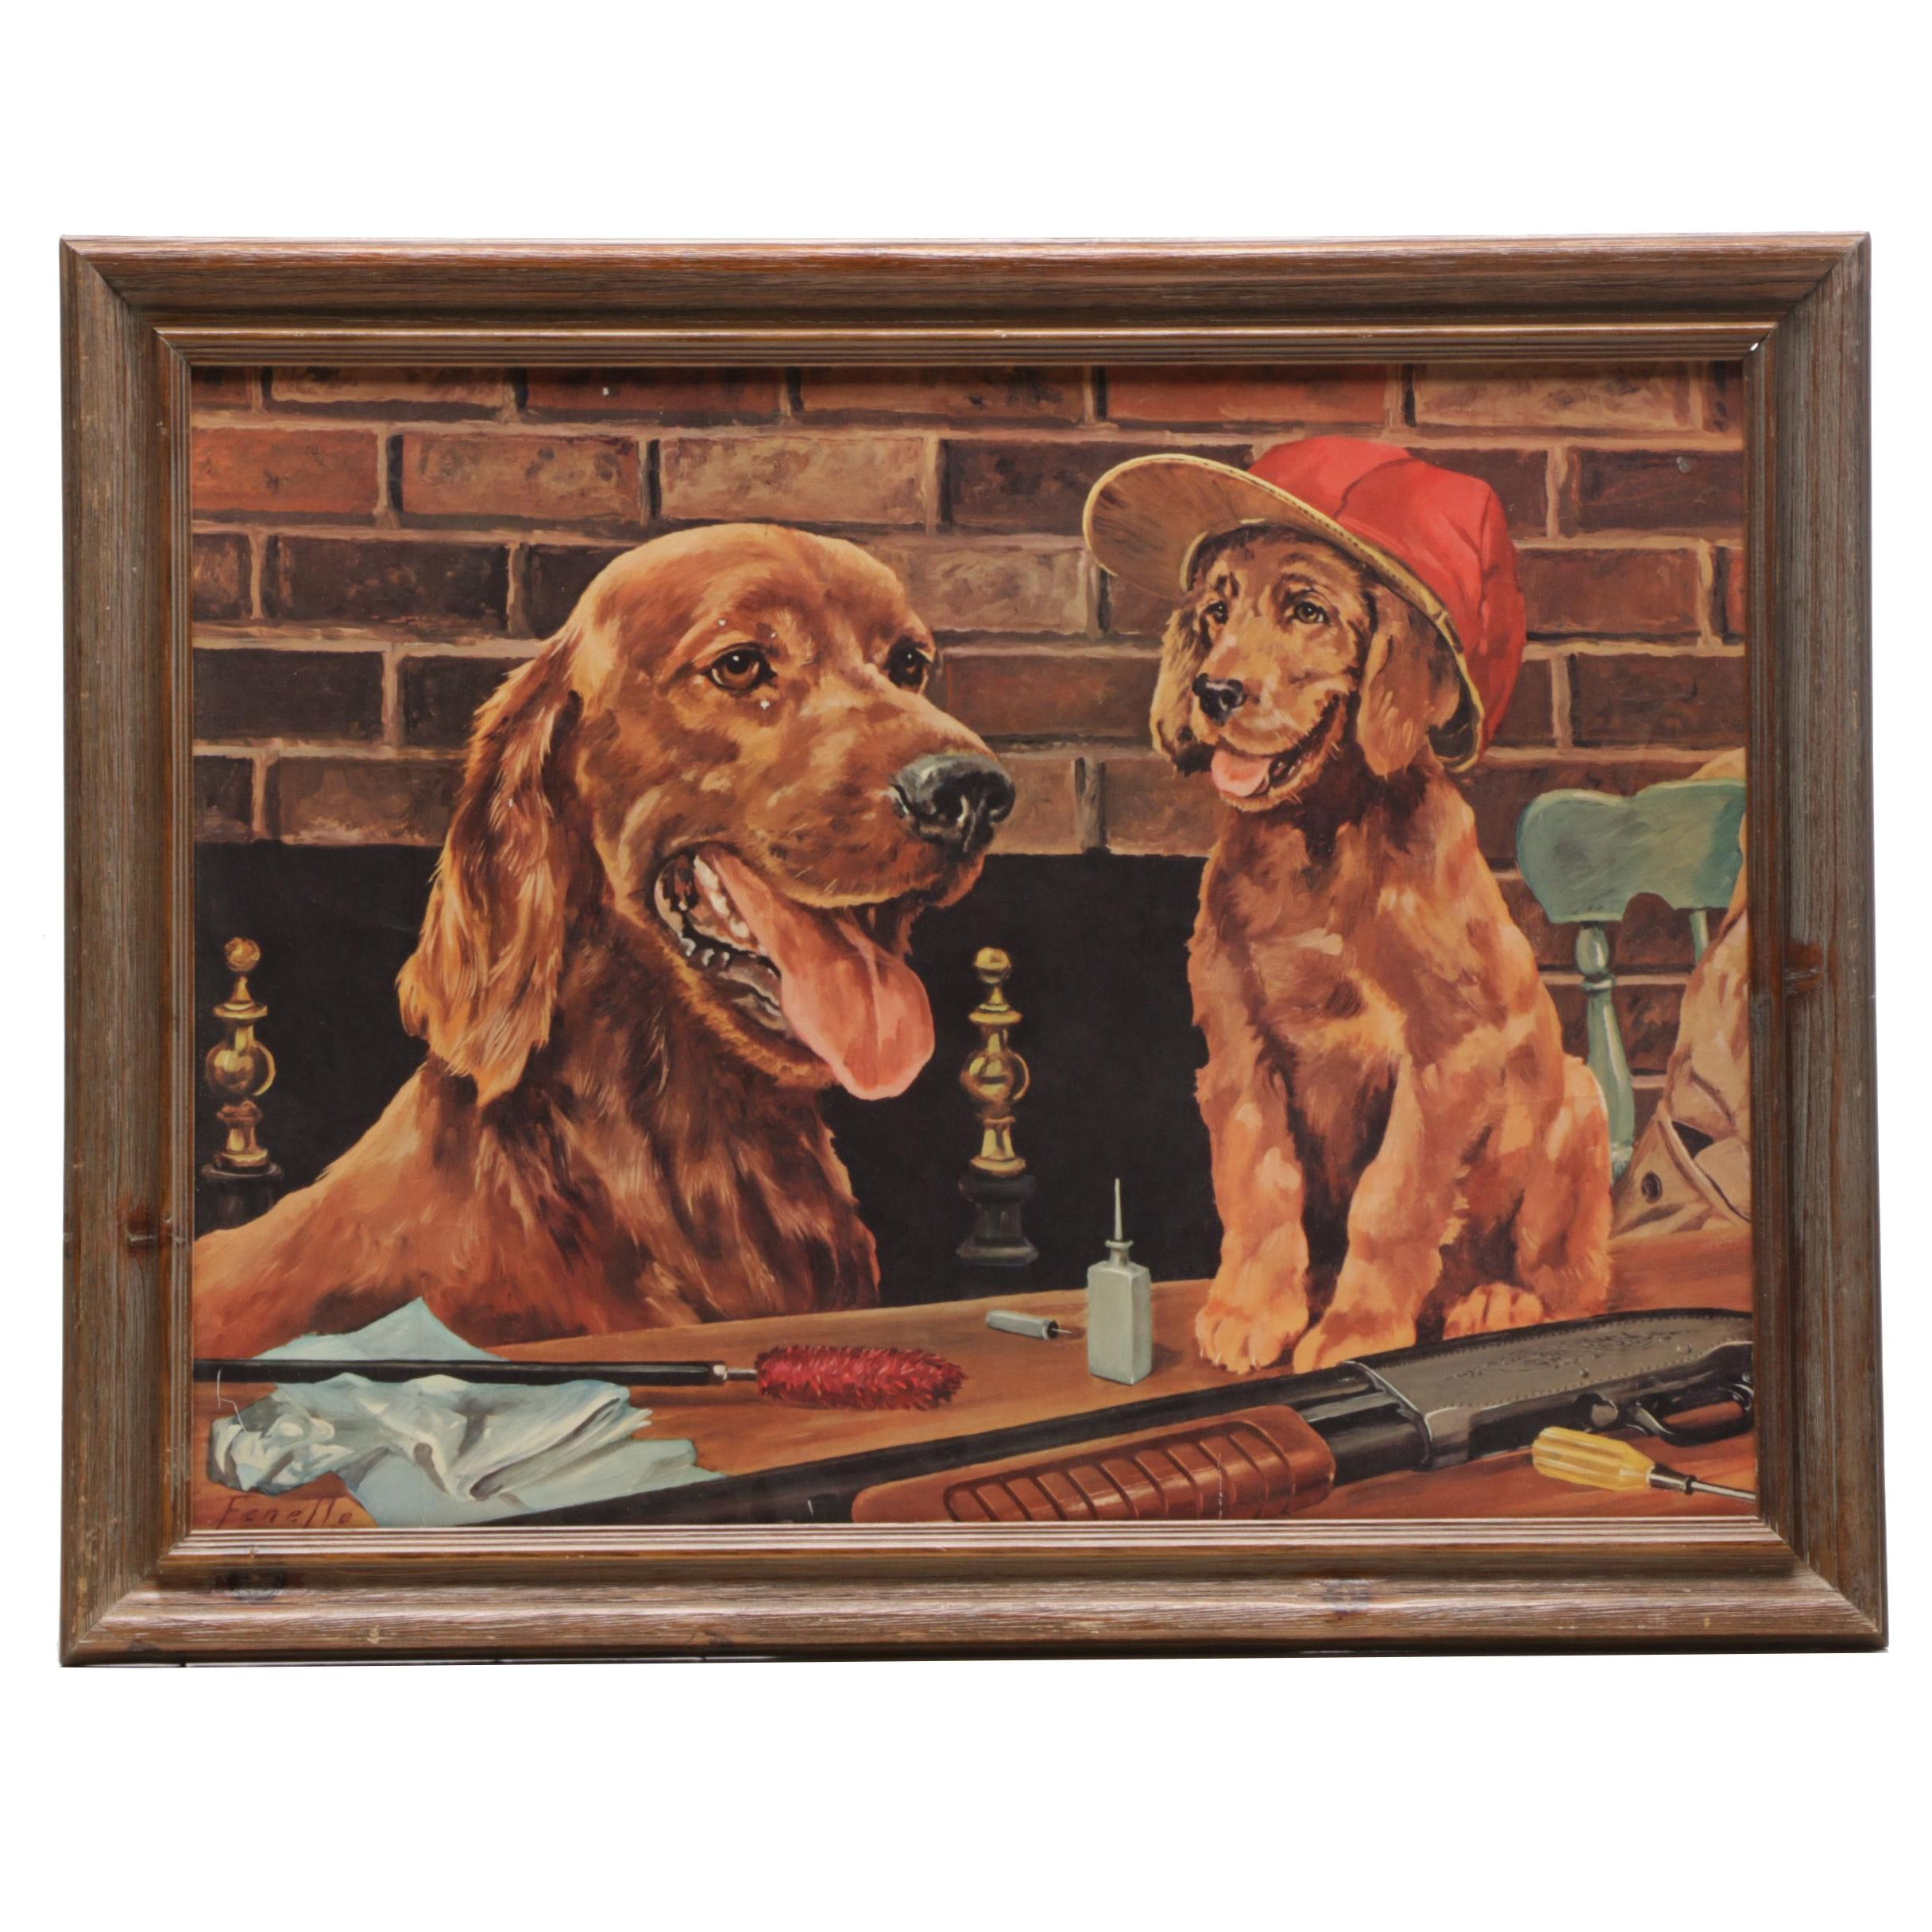 Offset Lithograph after Stanford Frenelle of Golden Retrievers with Hunting Gear